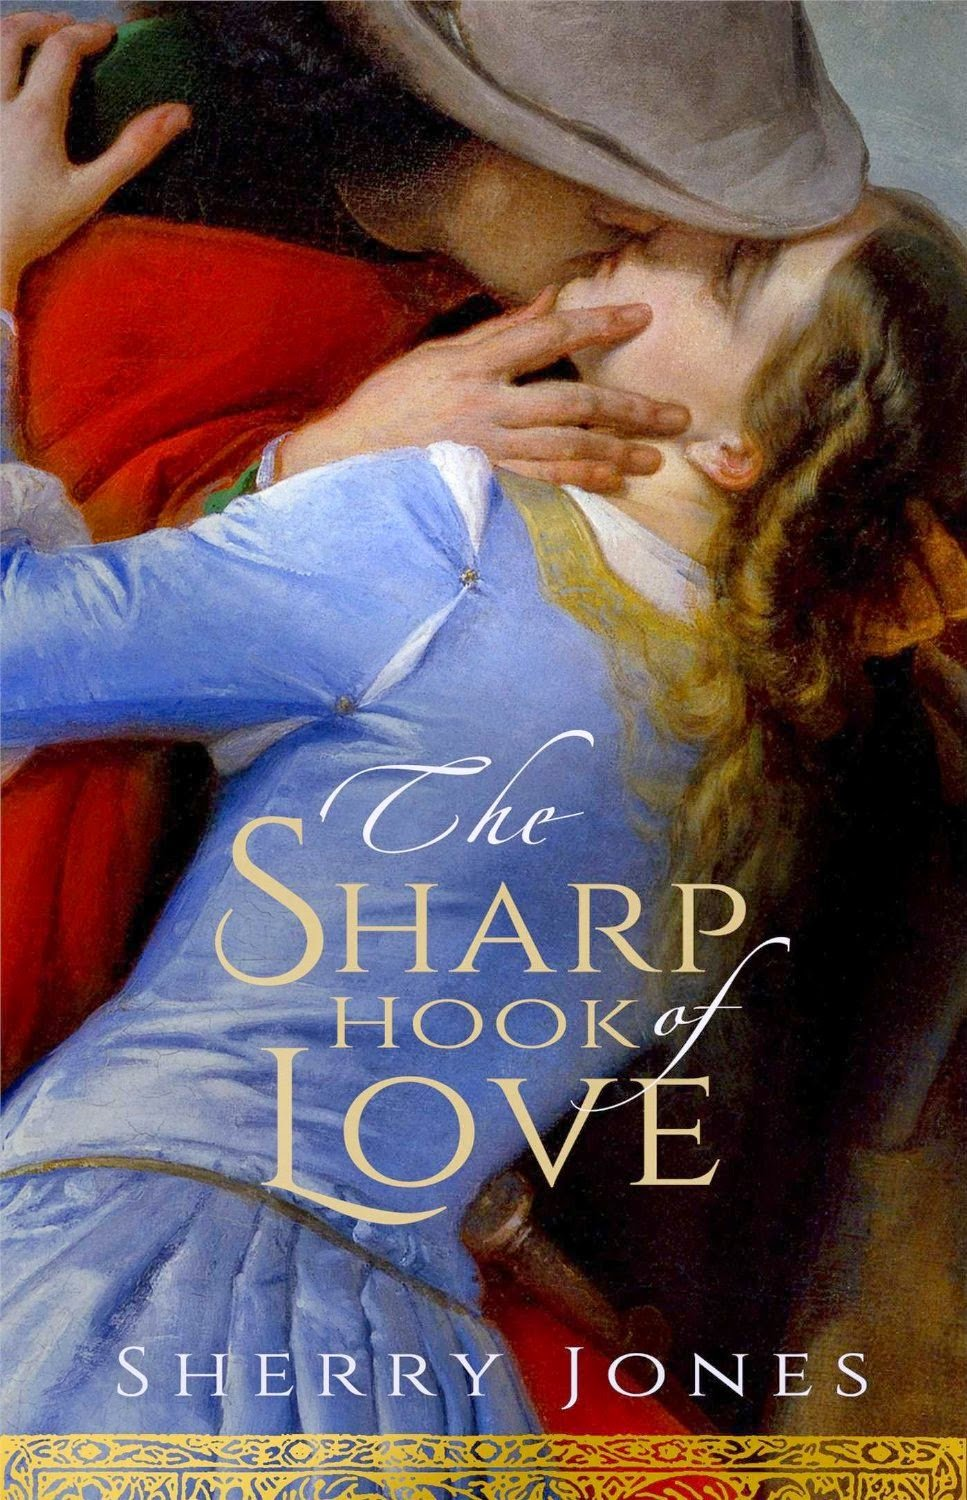 Interview with Sherry Jones – The Sharp Hook of Love